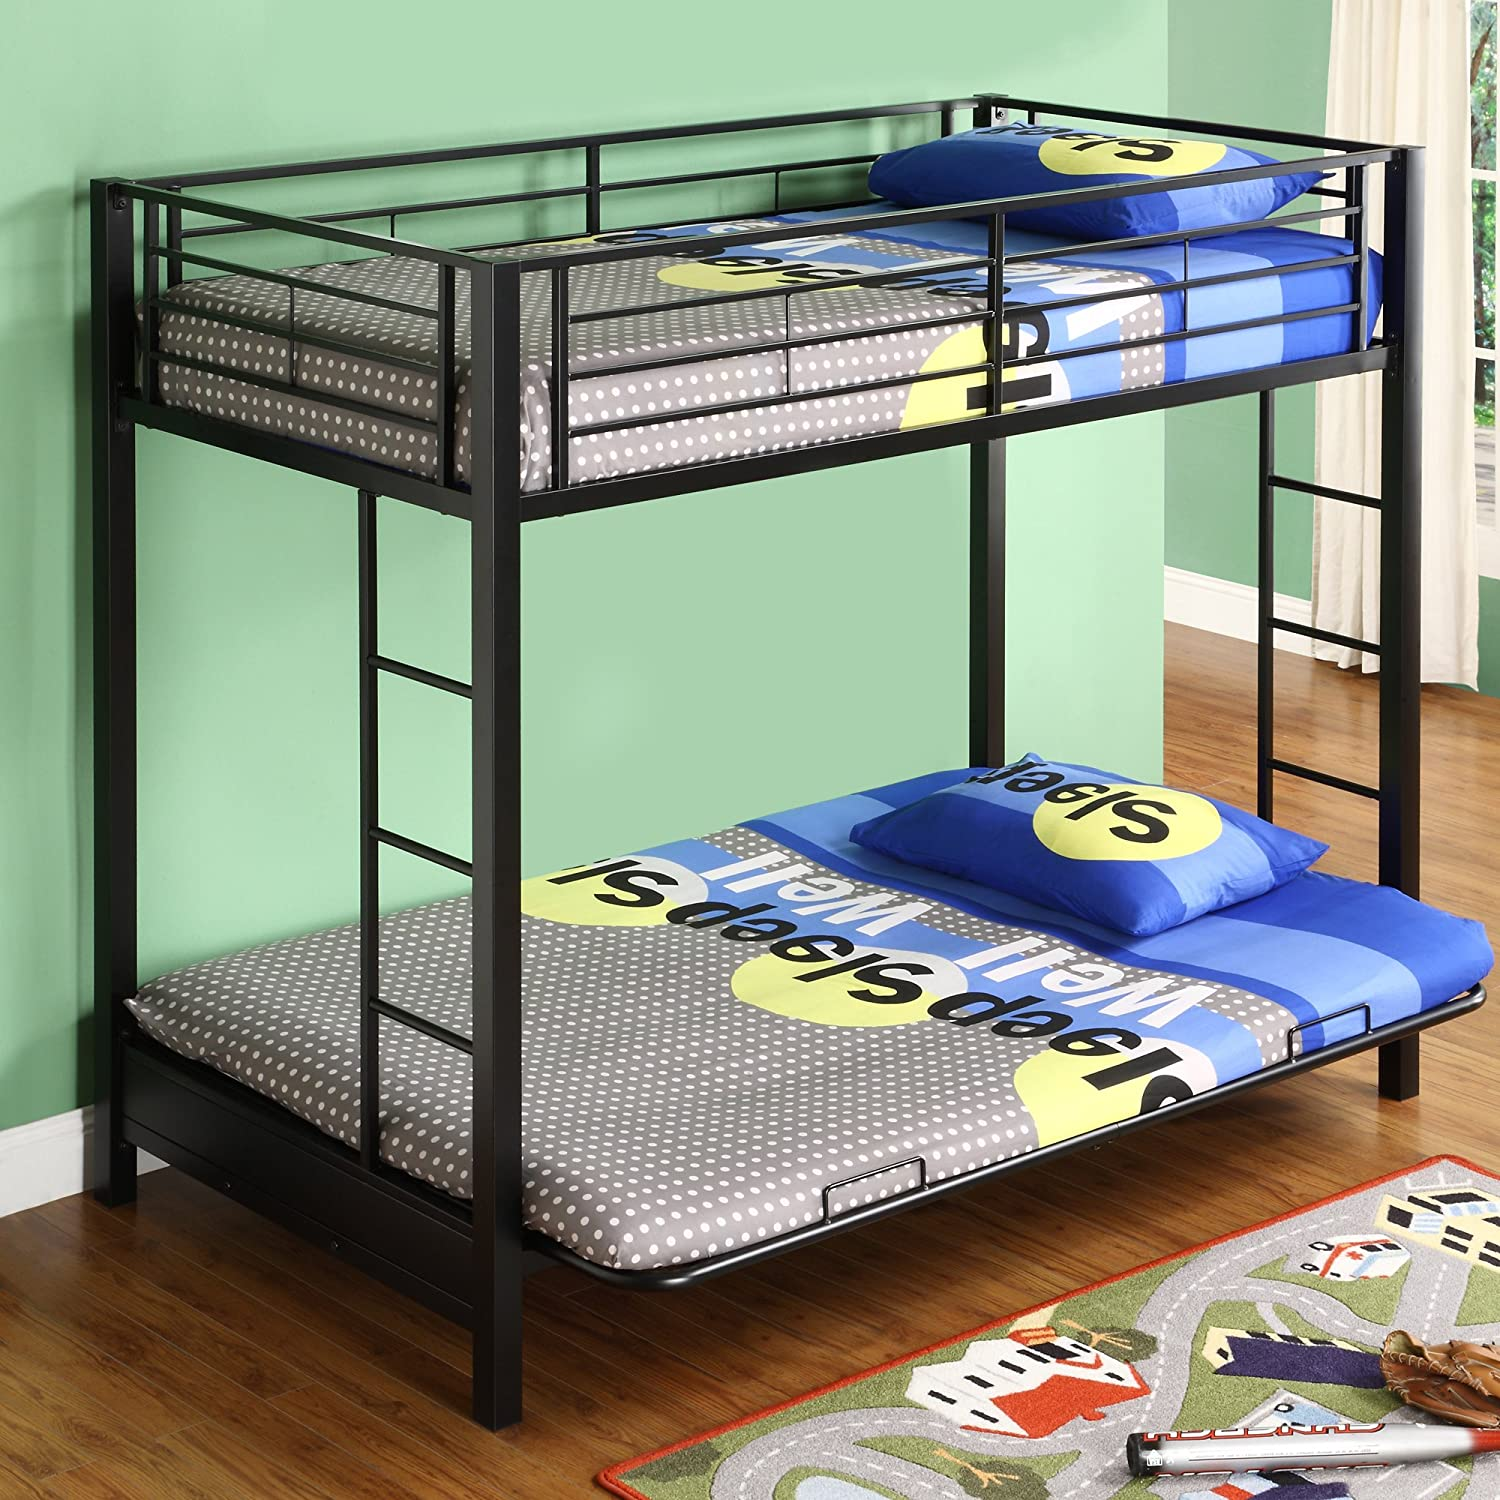 Top 7 Best Twin Over Futon Bunk Beds For Sale 200 To 500